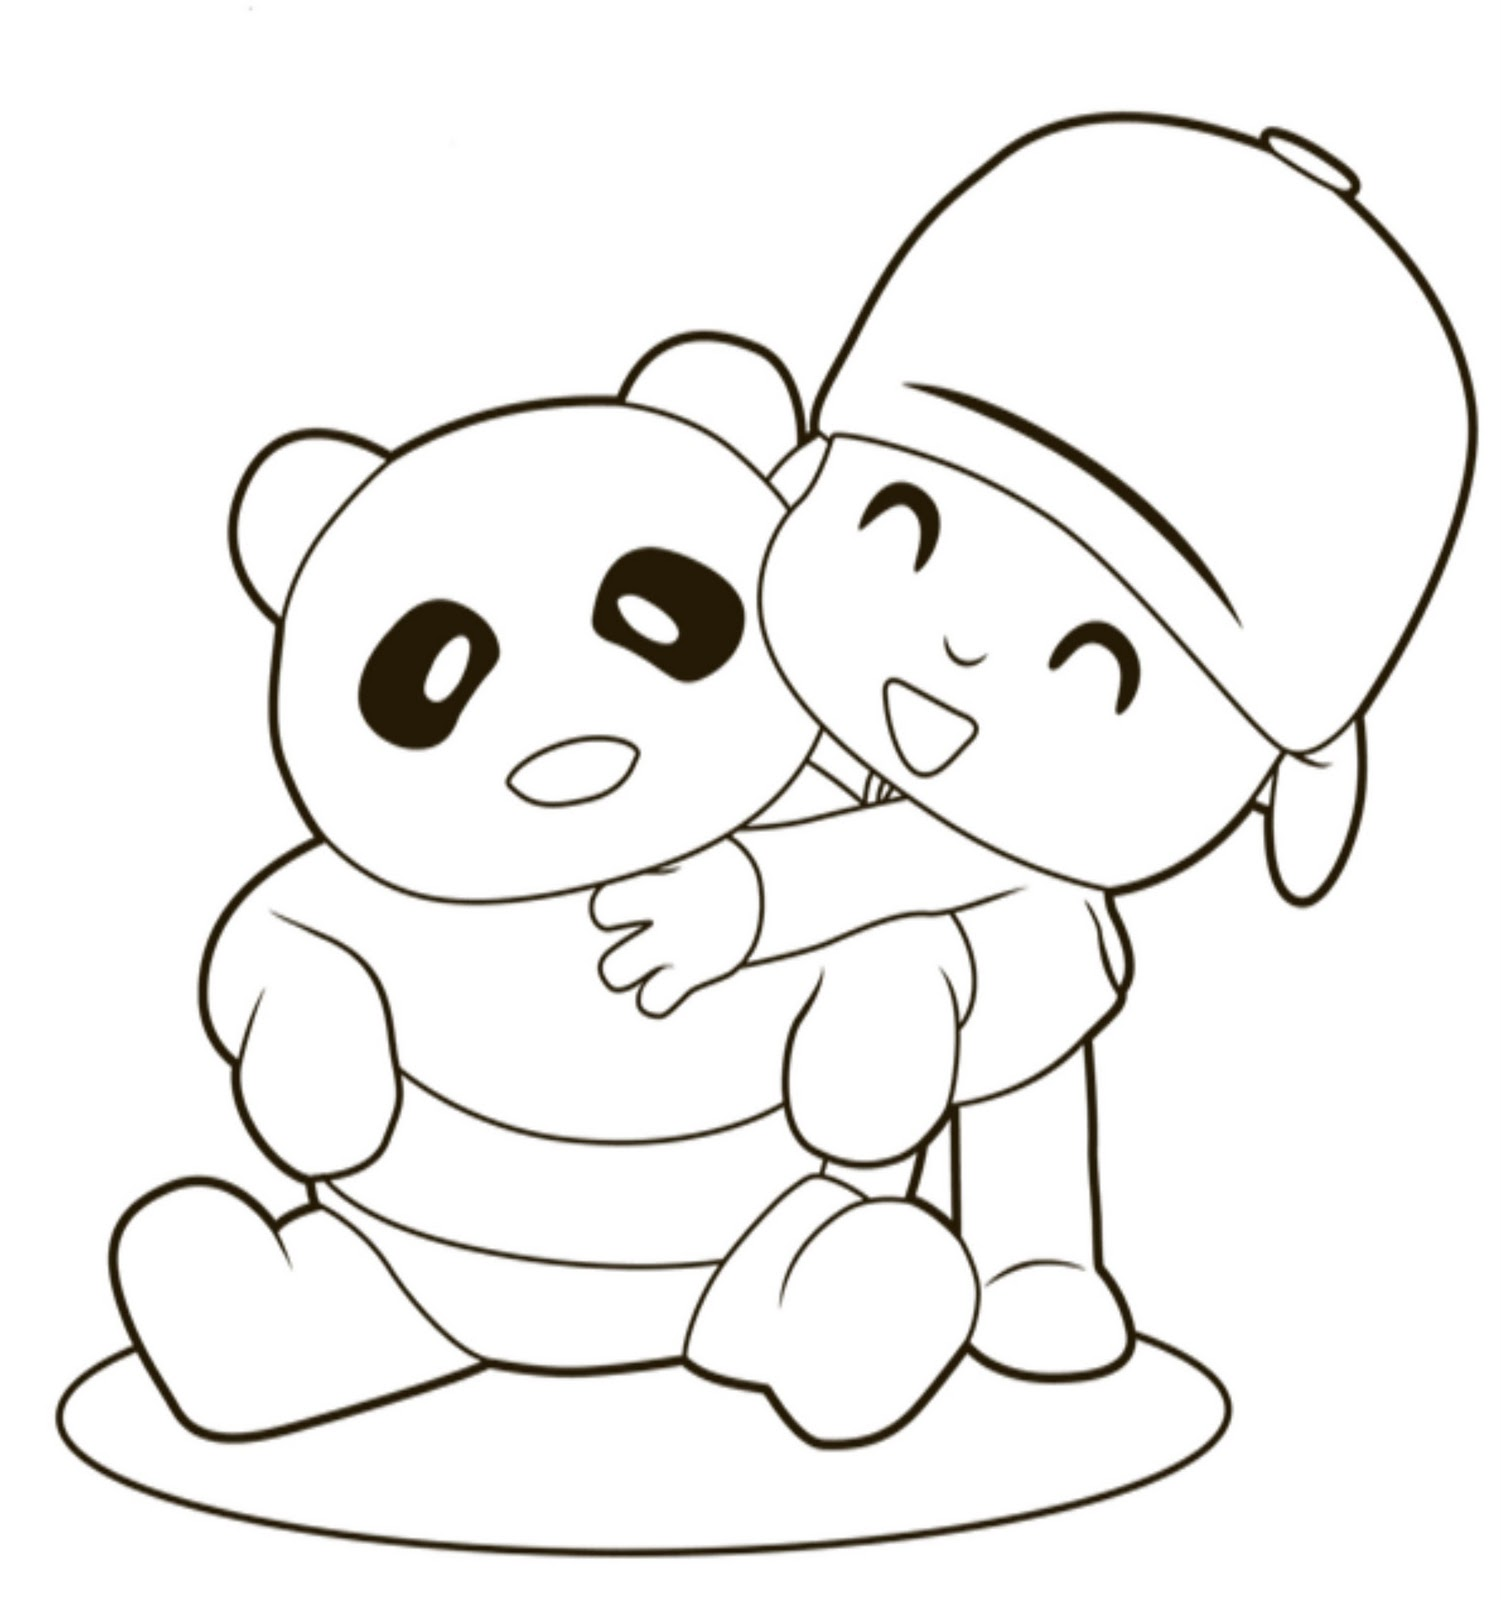 toys coloring pages free printable alltoys for